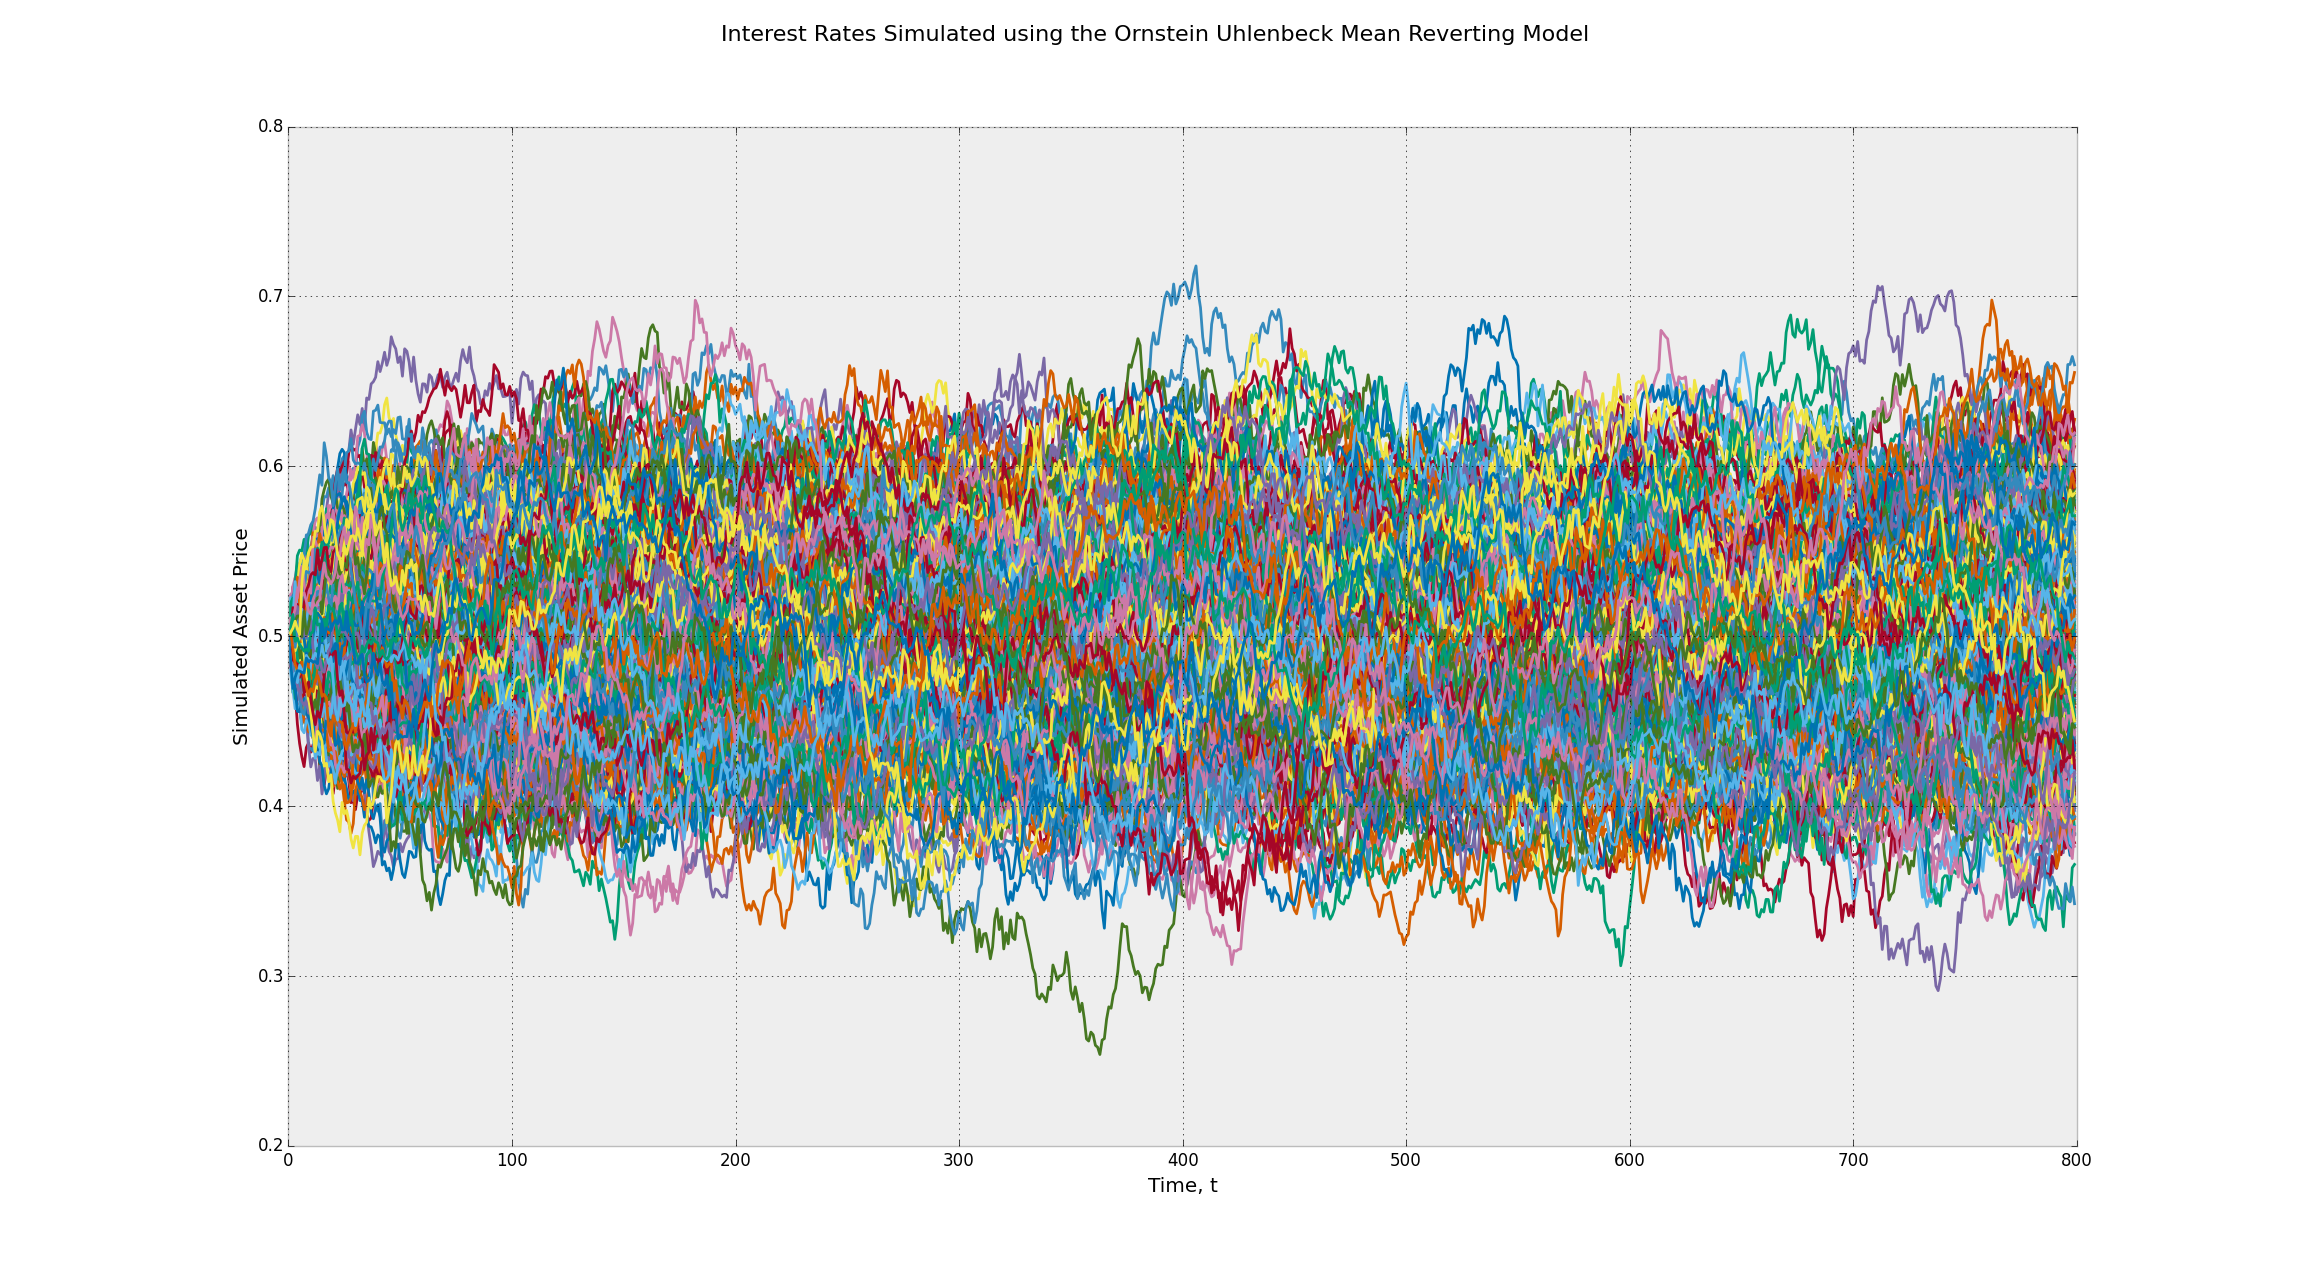 Interest Rates Simulated using the Ornstein Uhlenbeck Mean Reverting Stochastic Process - Many